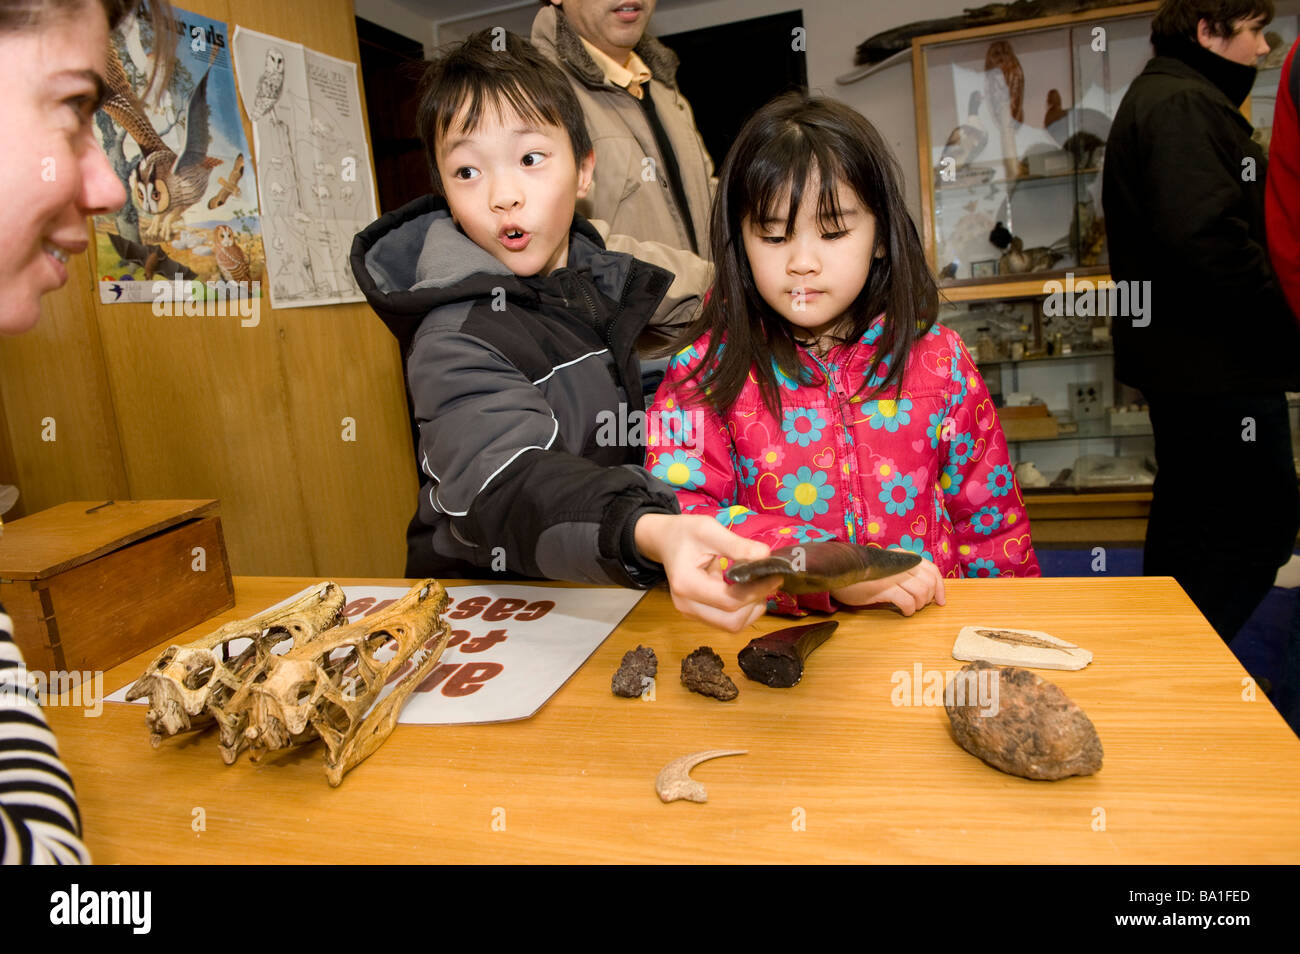 The museum at Oxford has a science day for kids where you get the chance to check out dinosaur bones - Stock Image